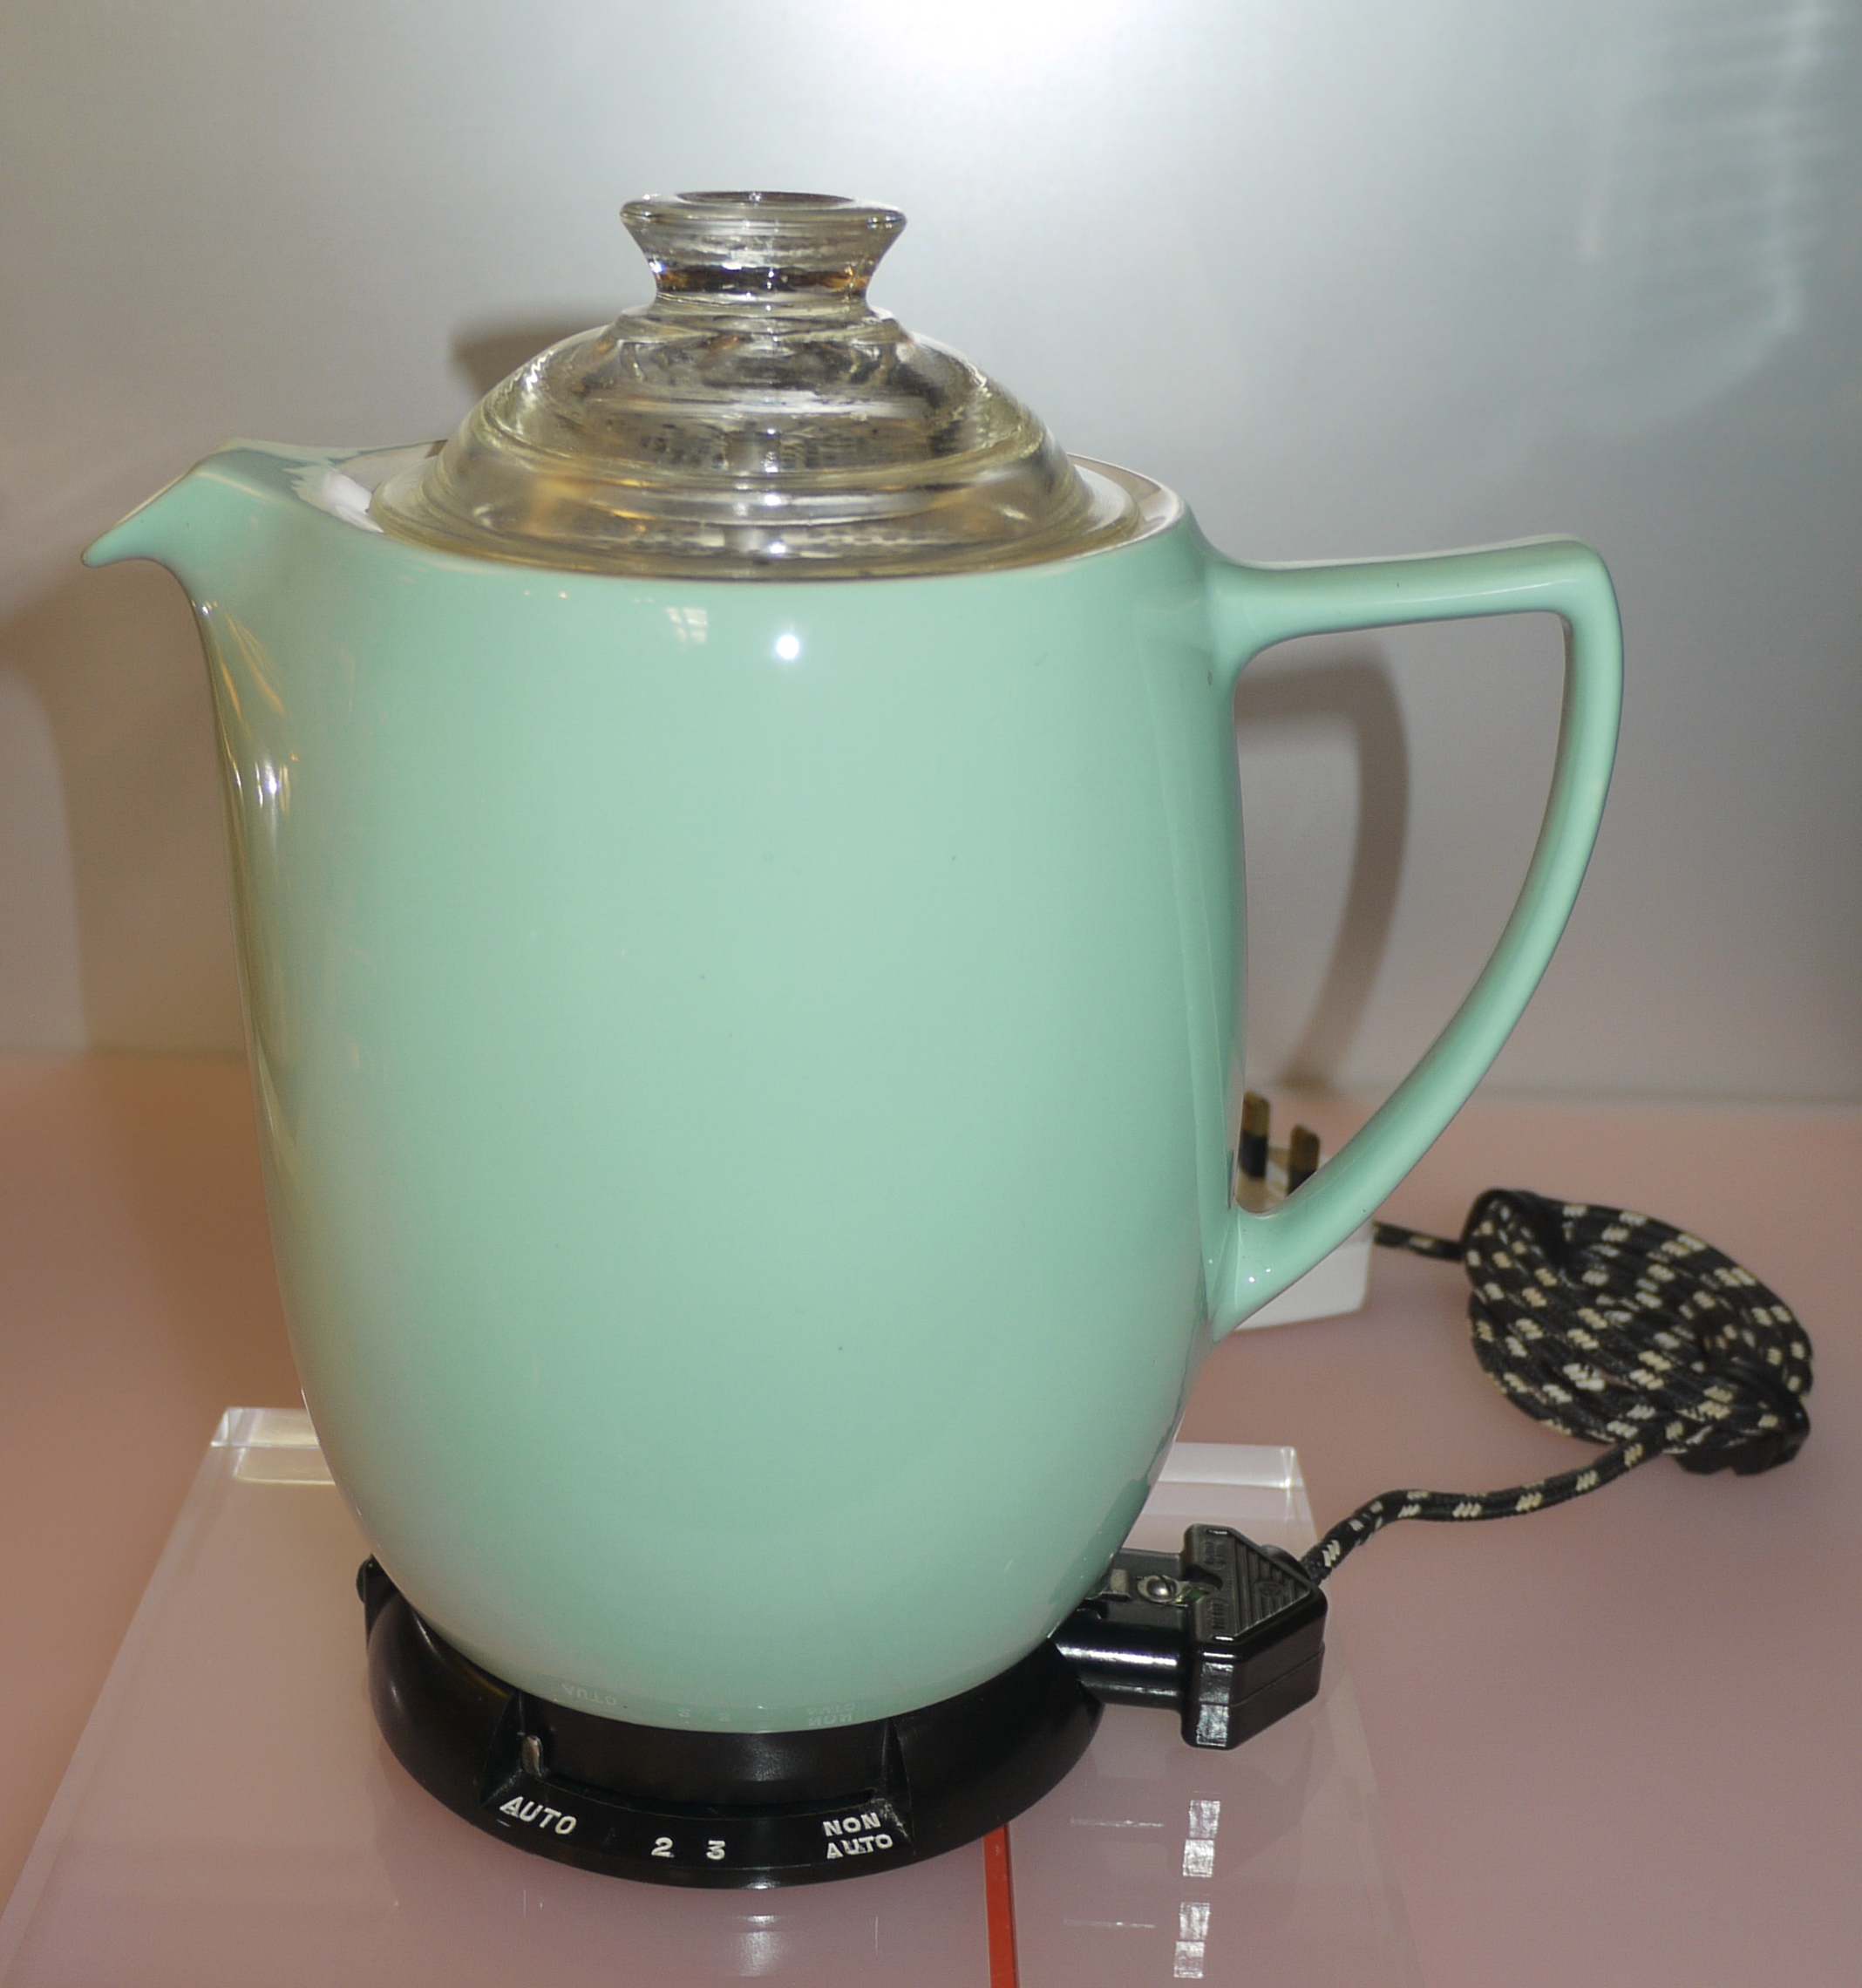 Continental Electric Coffee Maker How To Use : Vintage, Faberware Electric Percolator Coffee Urn, Pot